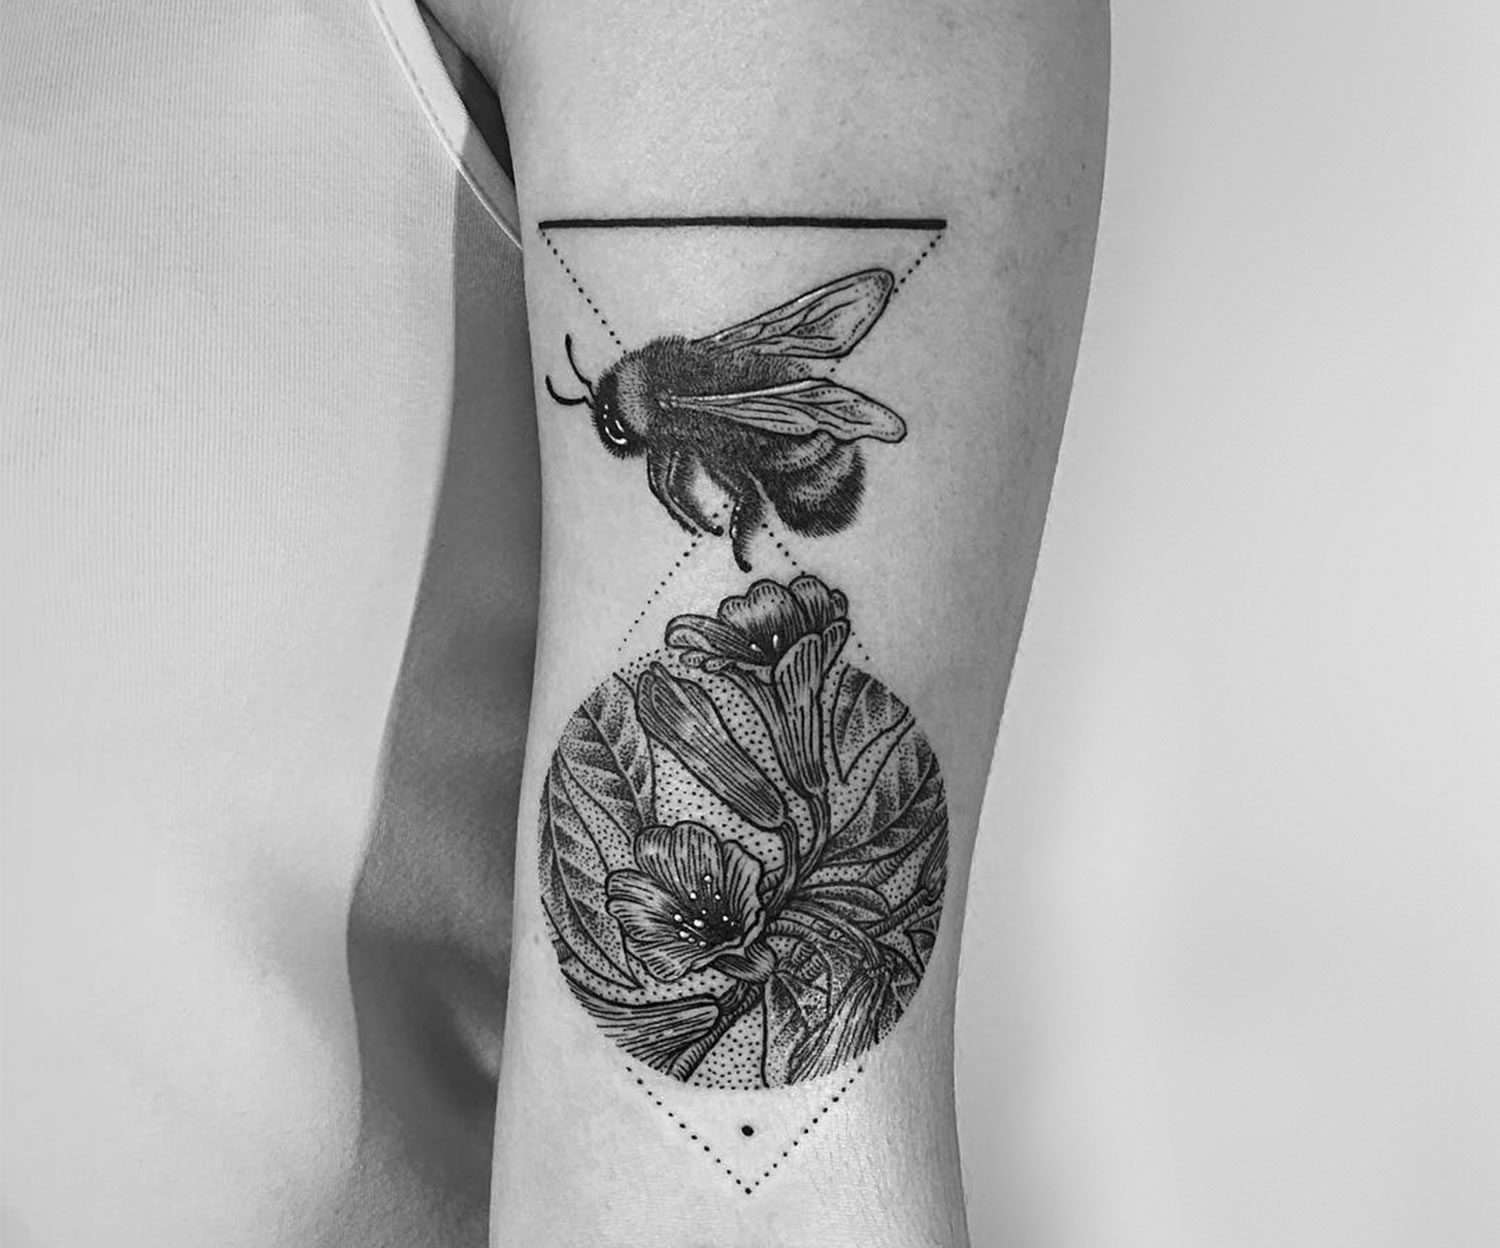 bumblebee and flowers, tattoo on arm